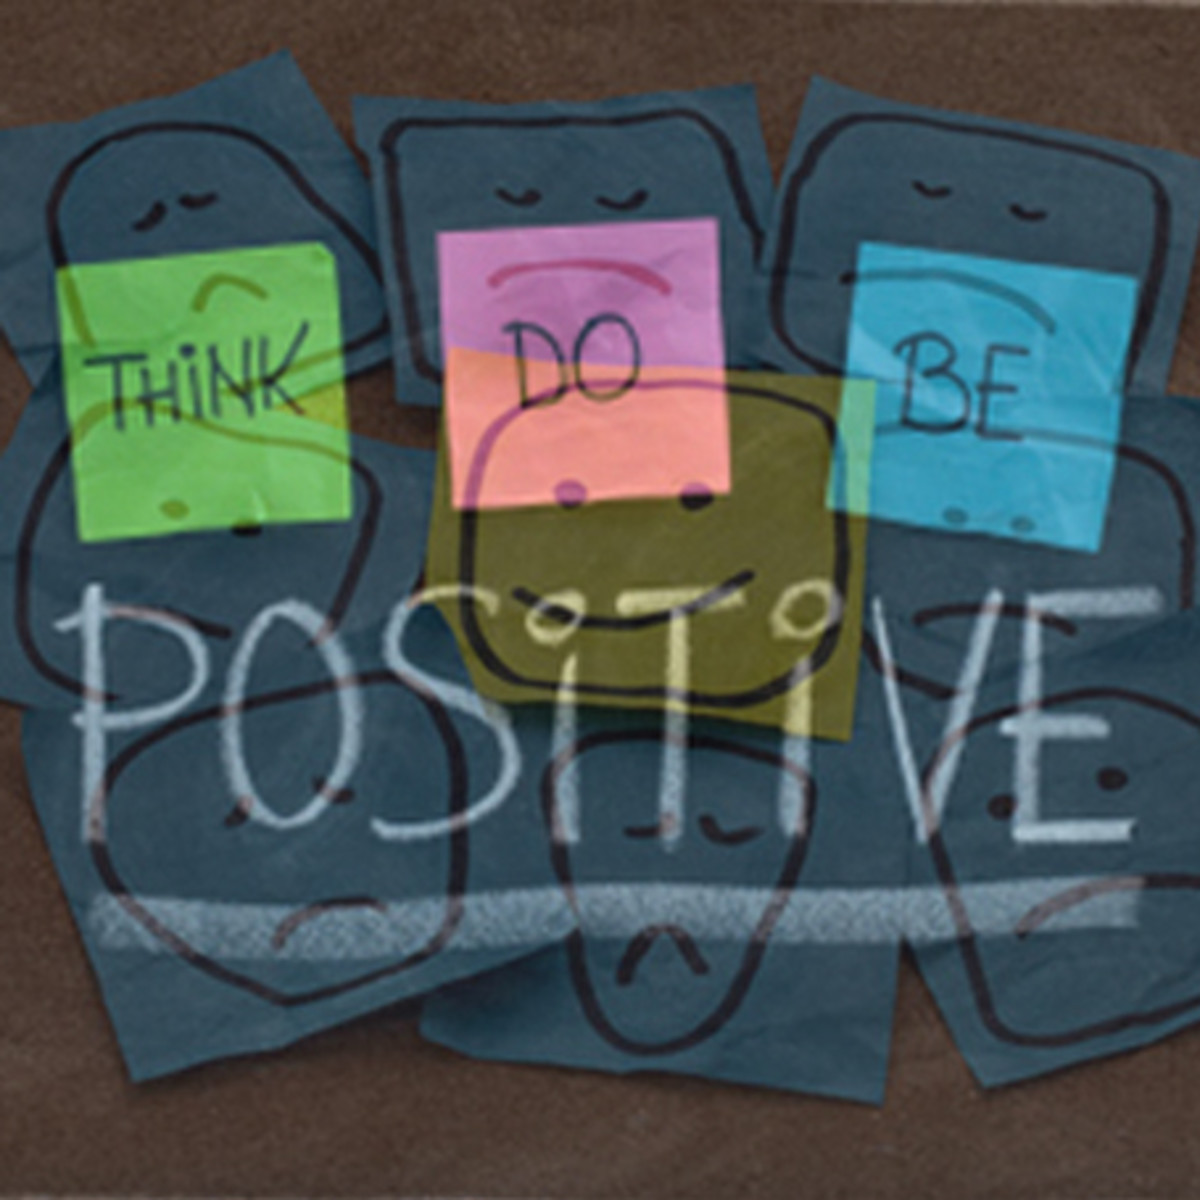 Think---Do---and Be Positive